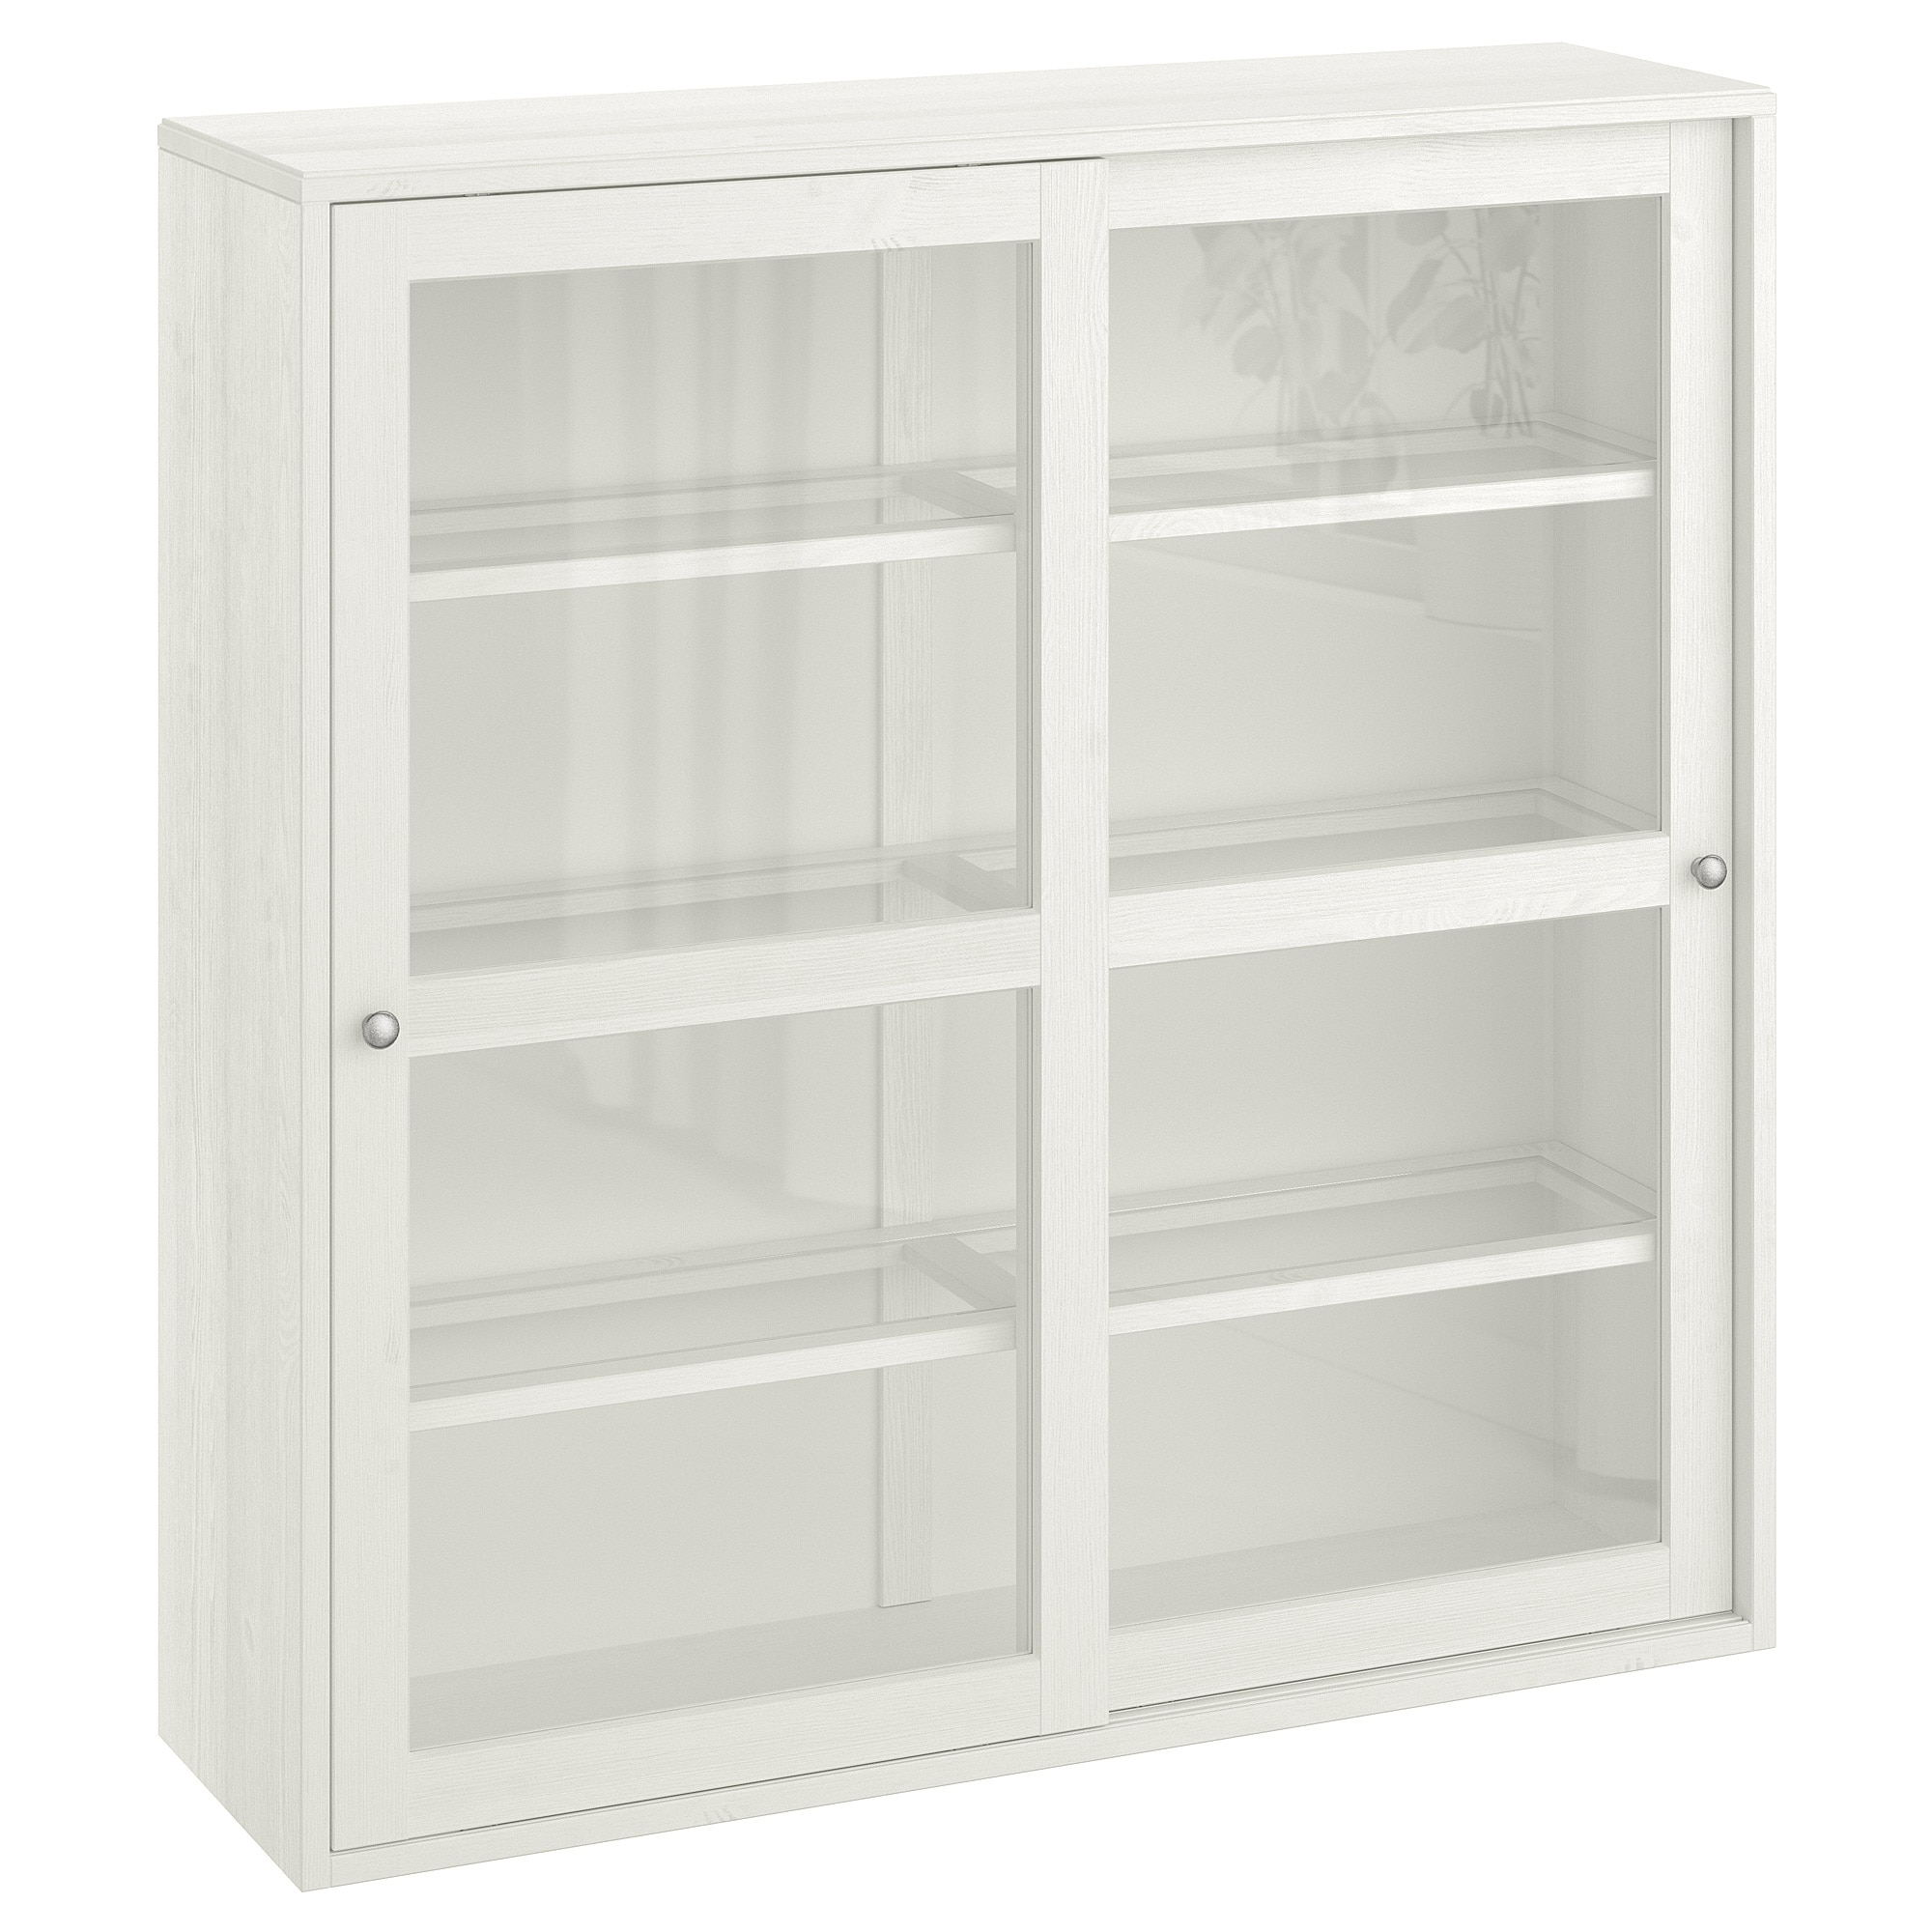 Glass Door Cabinet Havsta White In Glass Sliding Door Stackable Buffets (View 7 of 20)